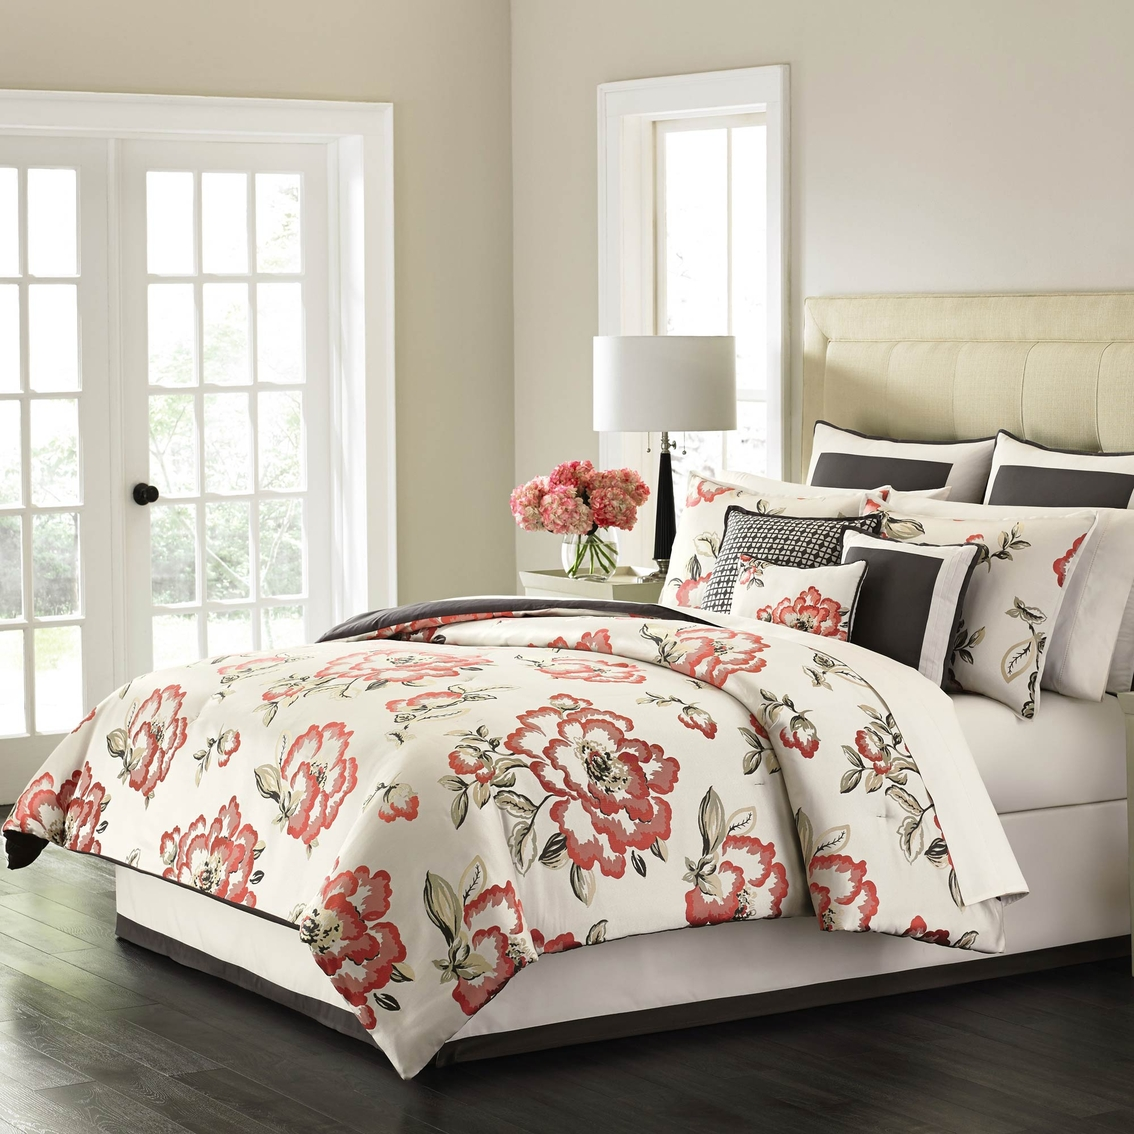 martha stewart collection peony blossom 9 piece bedding set bedding collections home. Black Bedroom Furniture Sets. Home Design Ideas